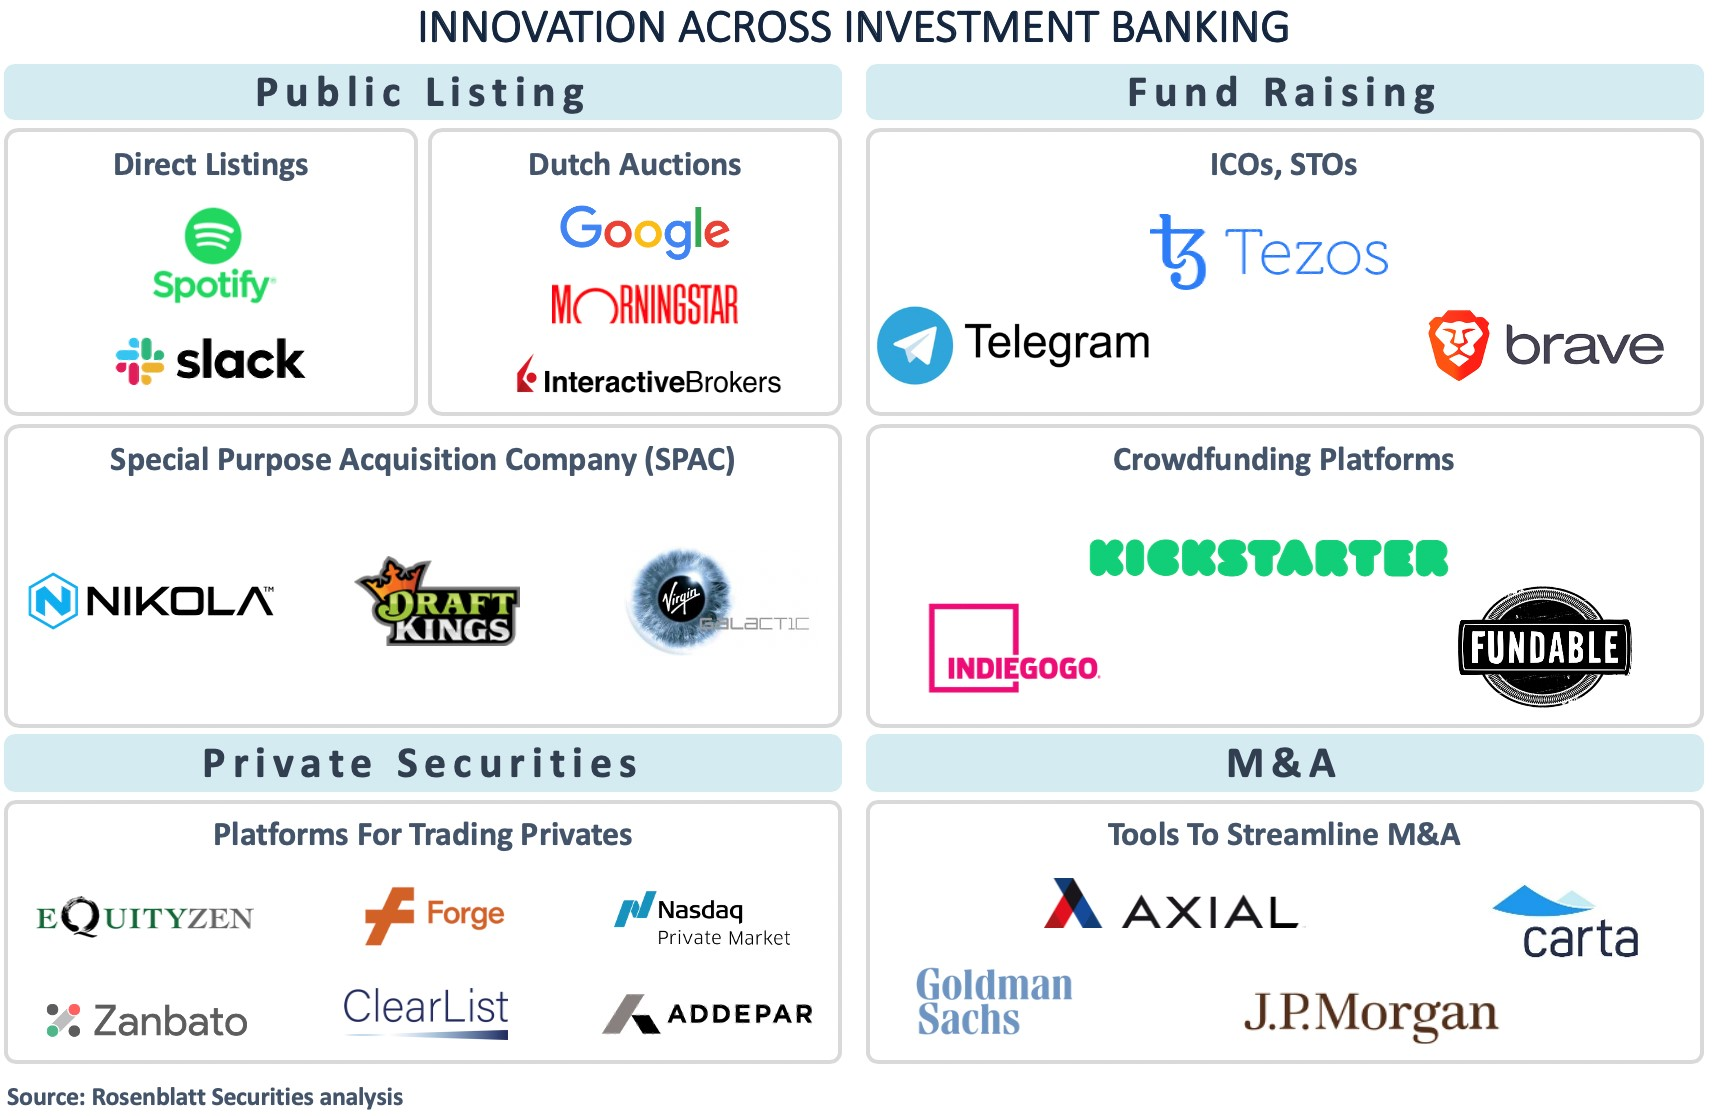 Making Sense of the Innovation in Investment Banking